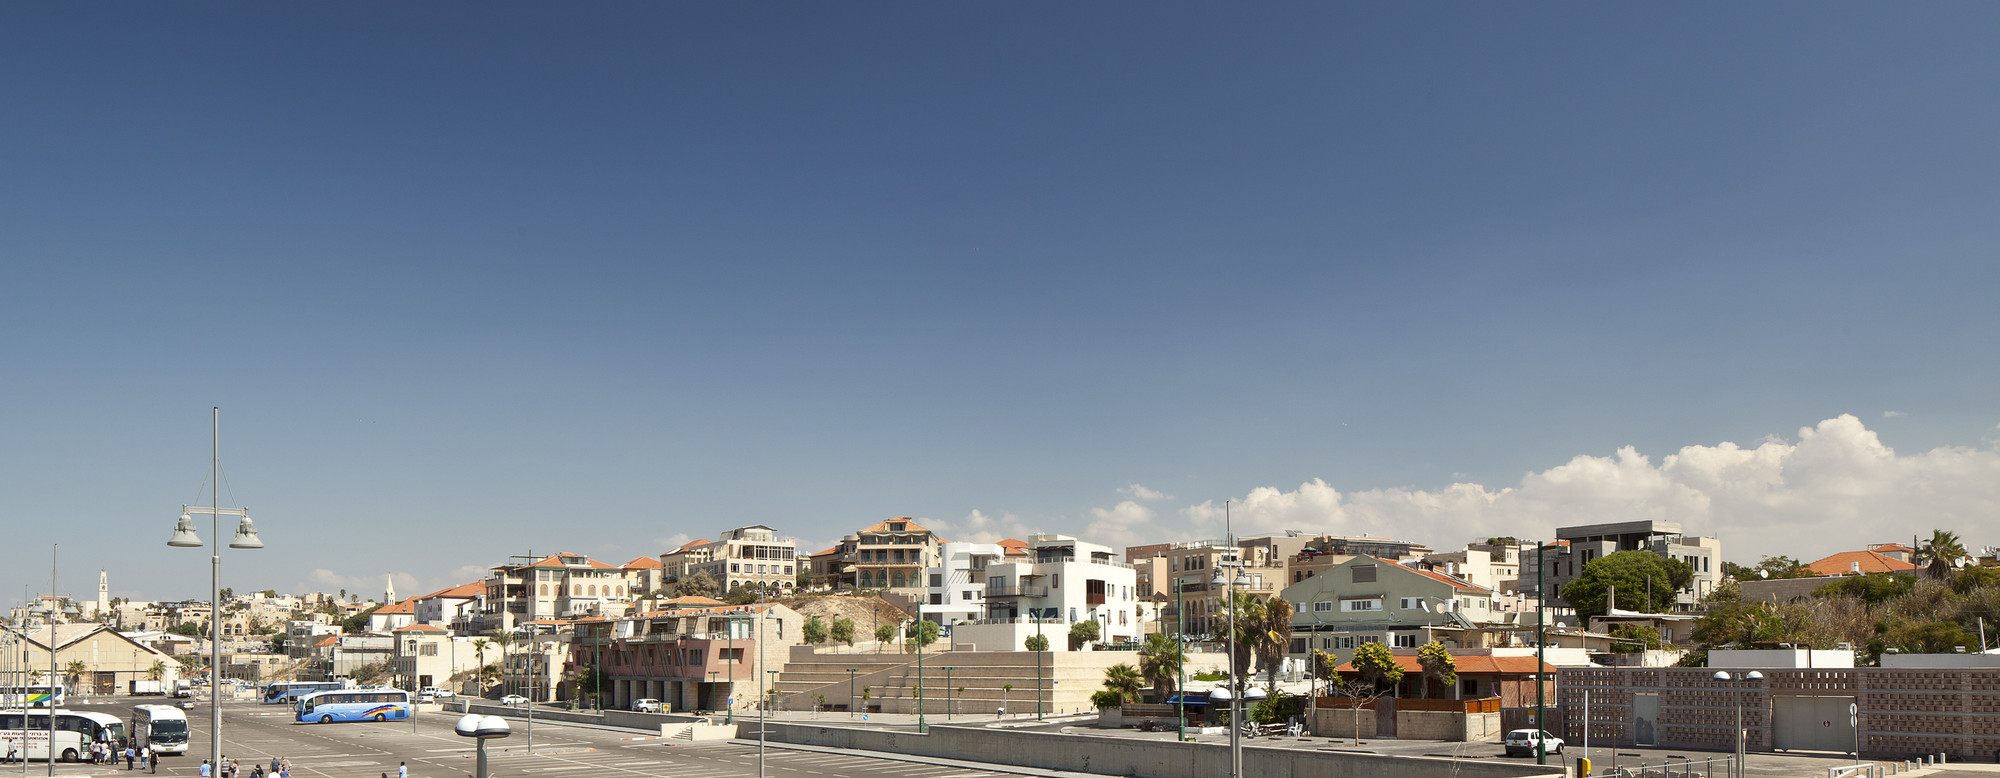 Housing in Jaffa / GalPeleg Architects